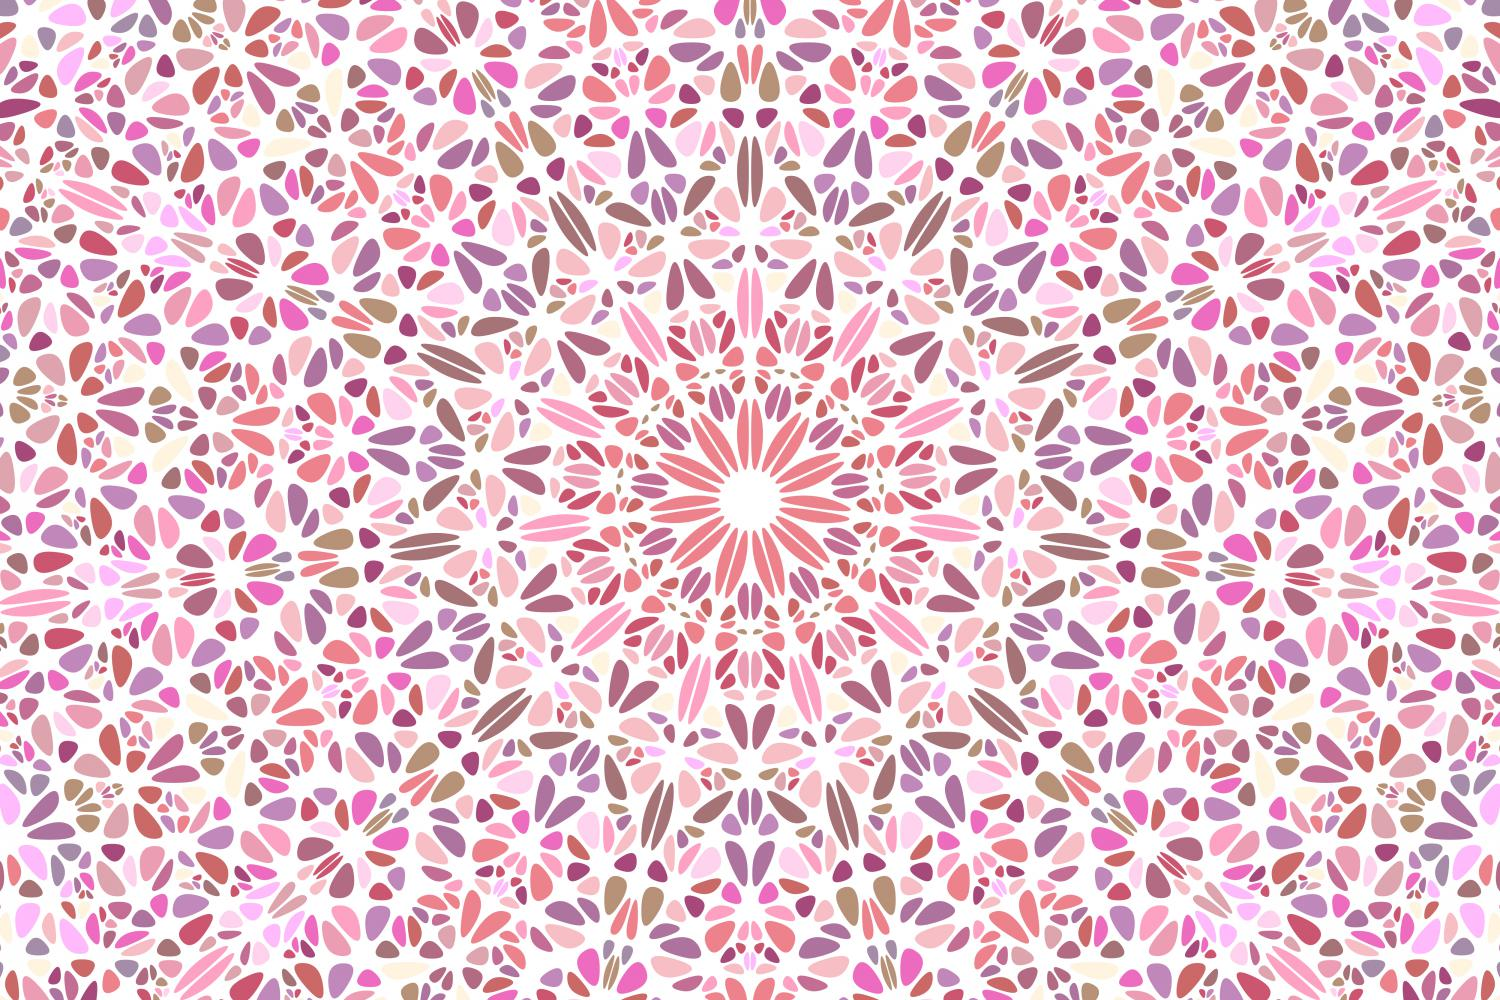 48 Floral Mandala Backgrounds example image 7